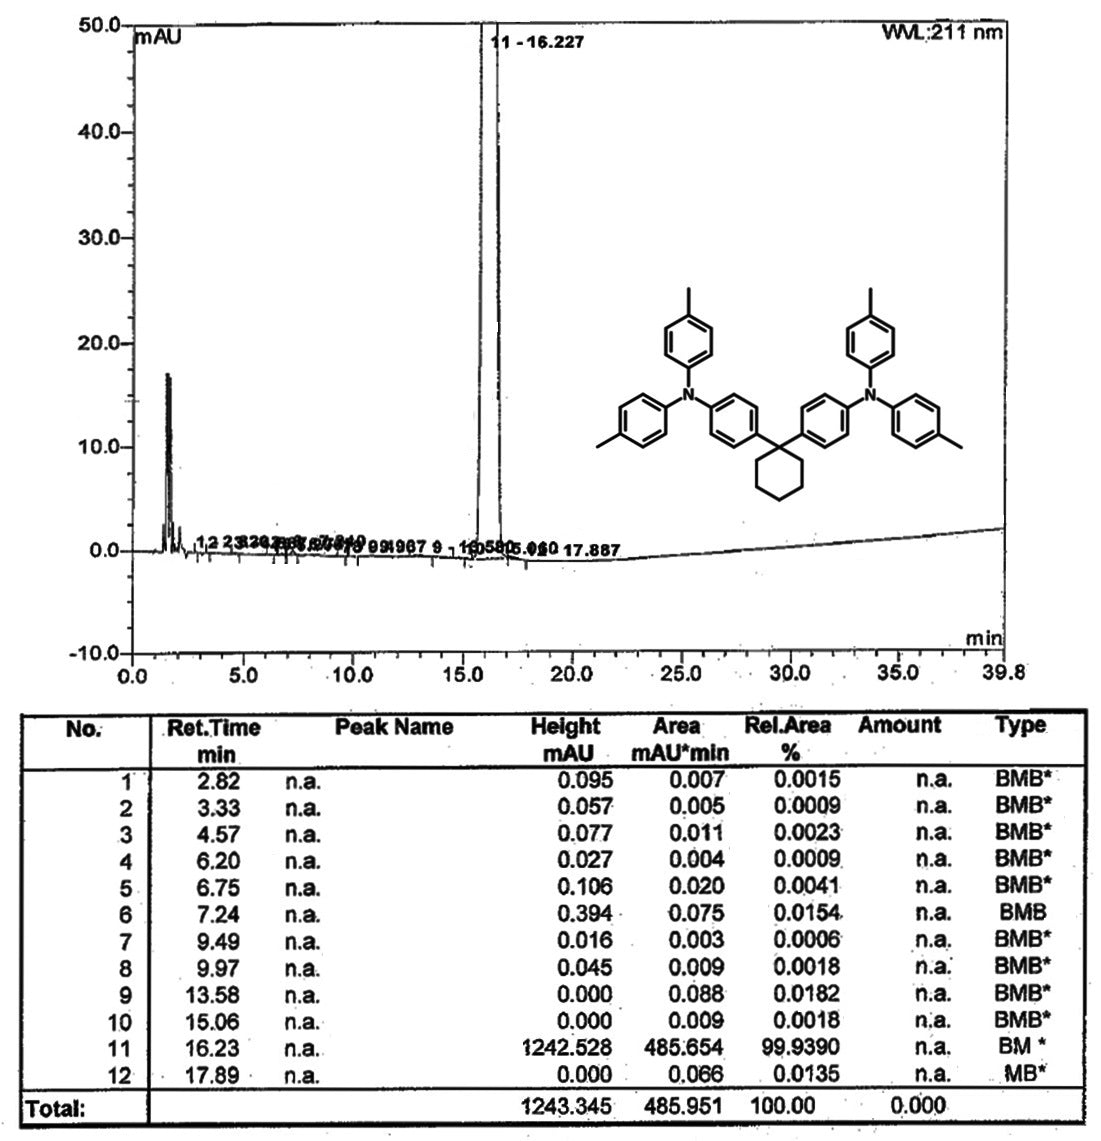 hplc trace of tapc